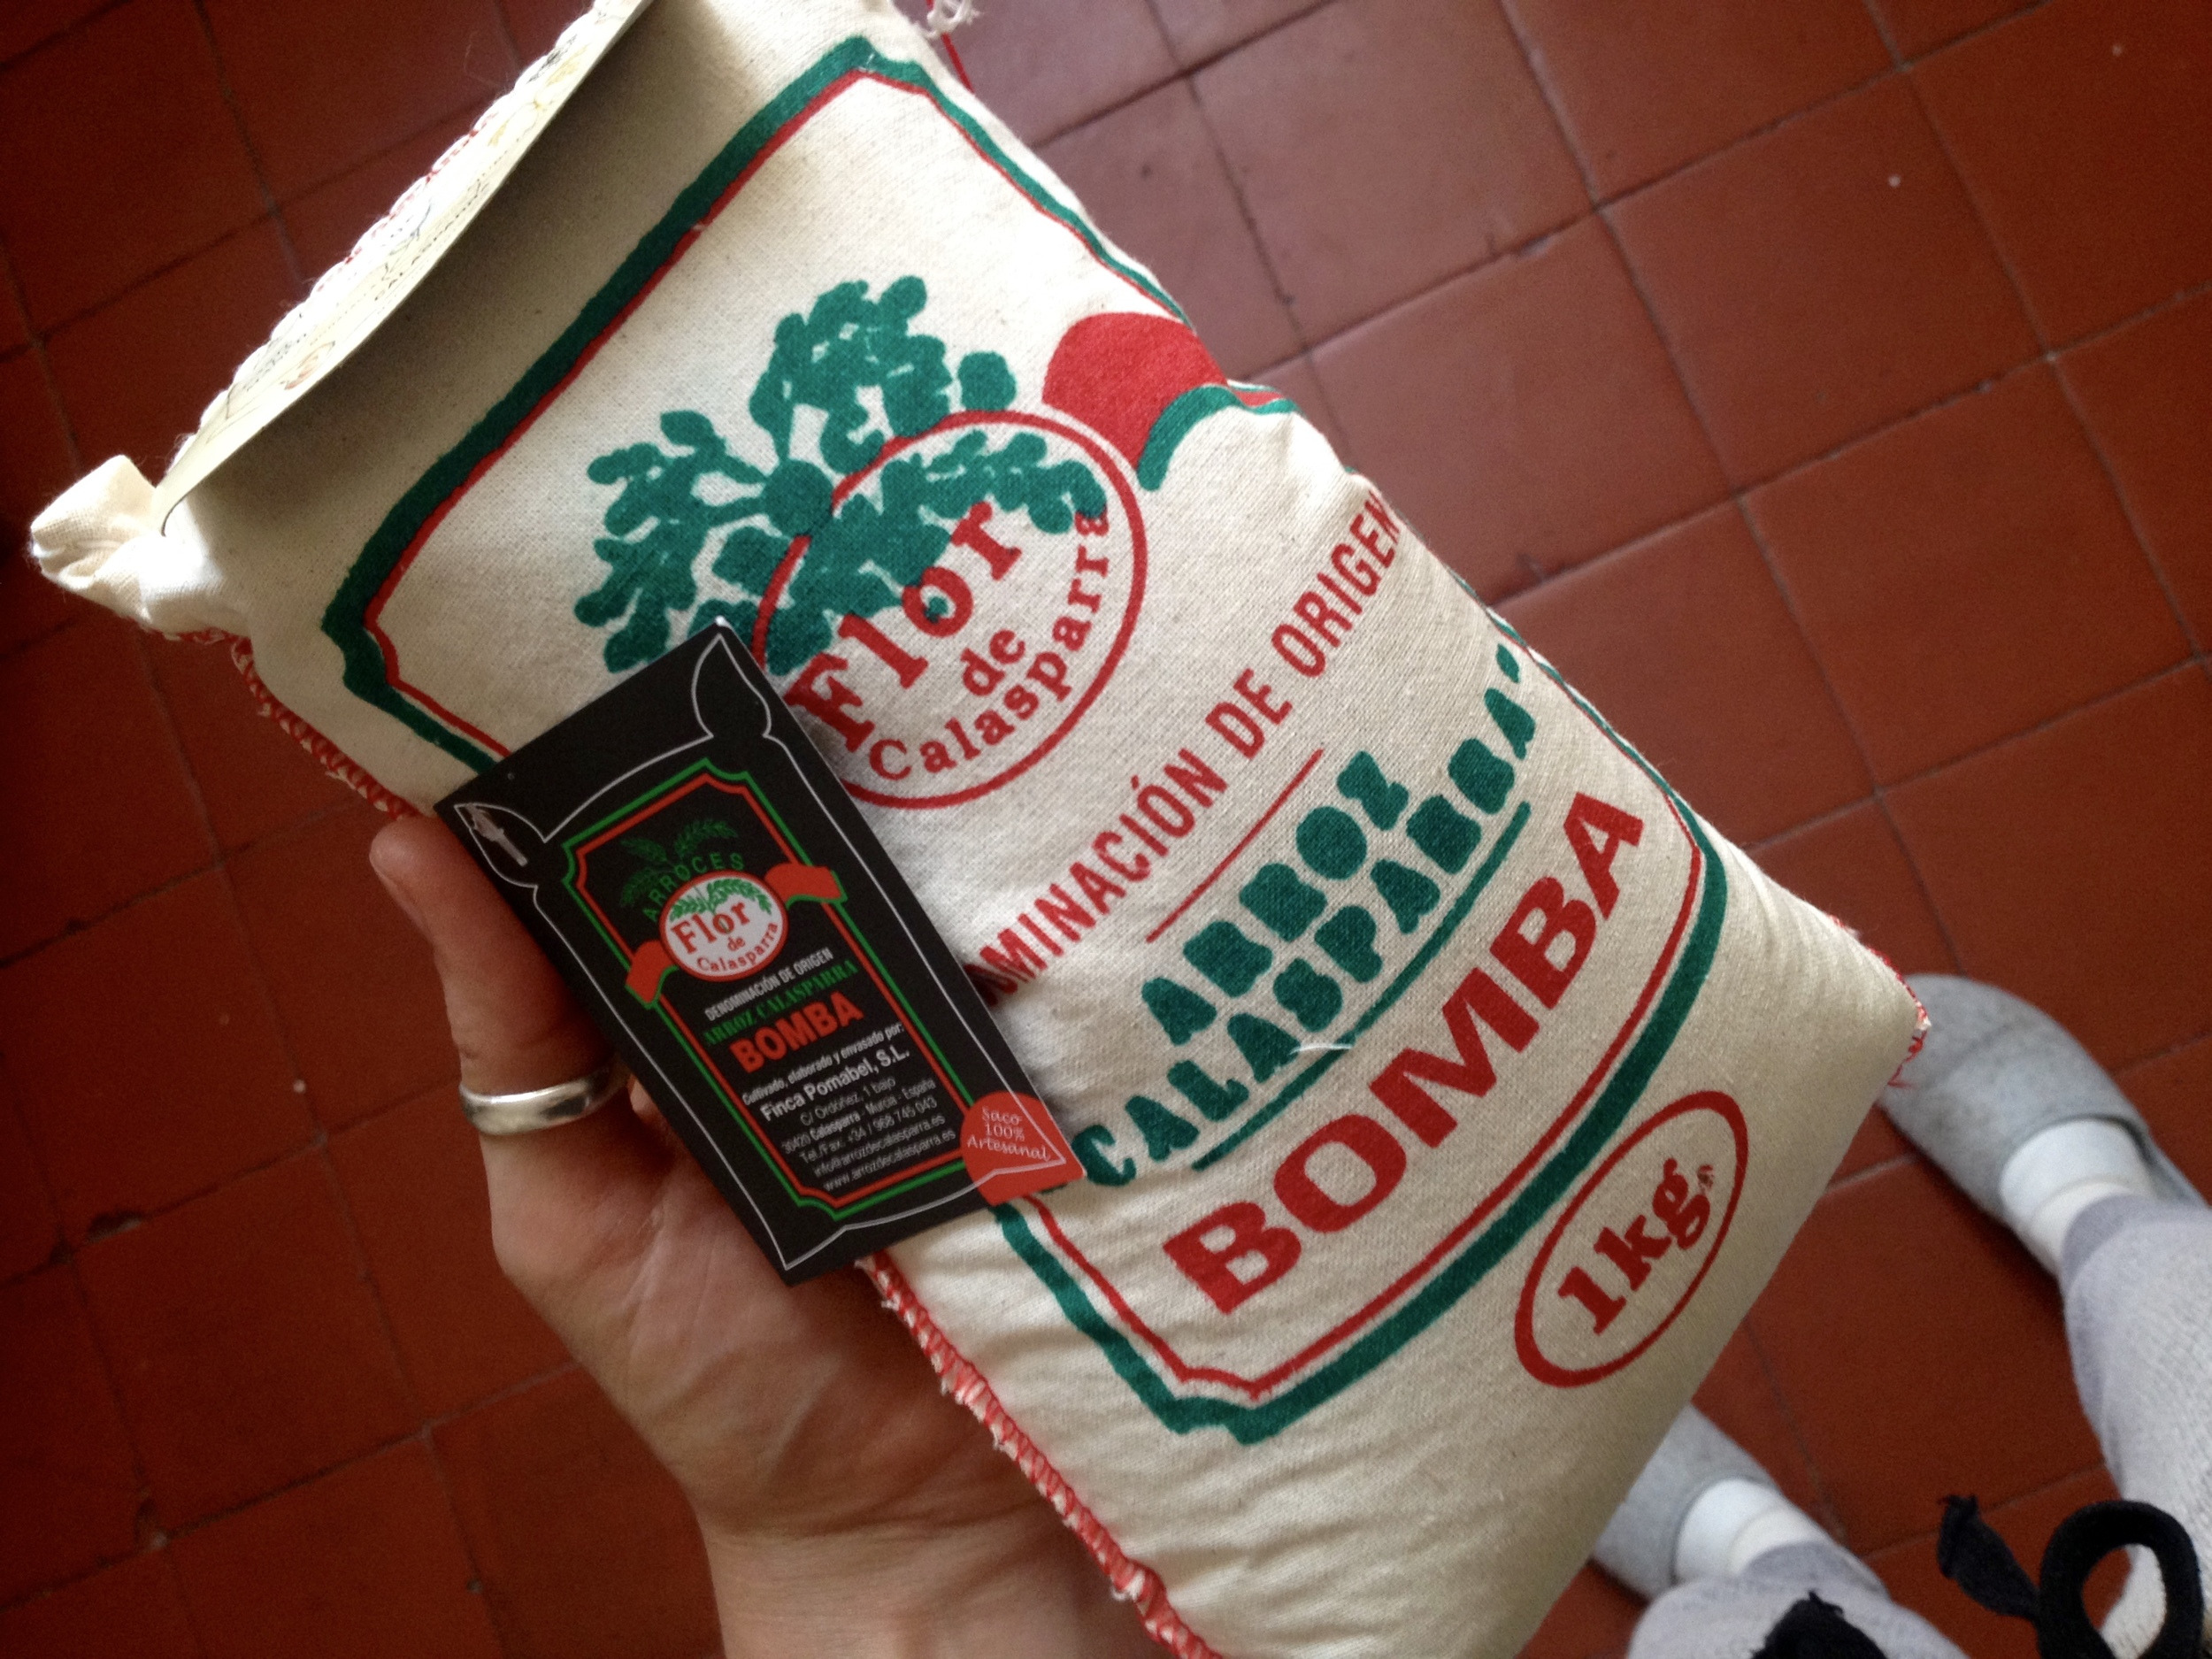 1 kilogram of bomba rice from Iber y Co. (9 euros!)